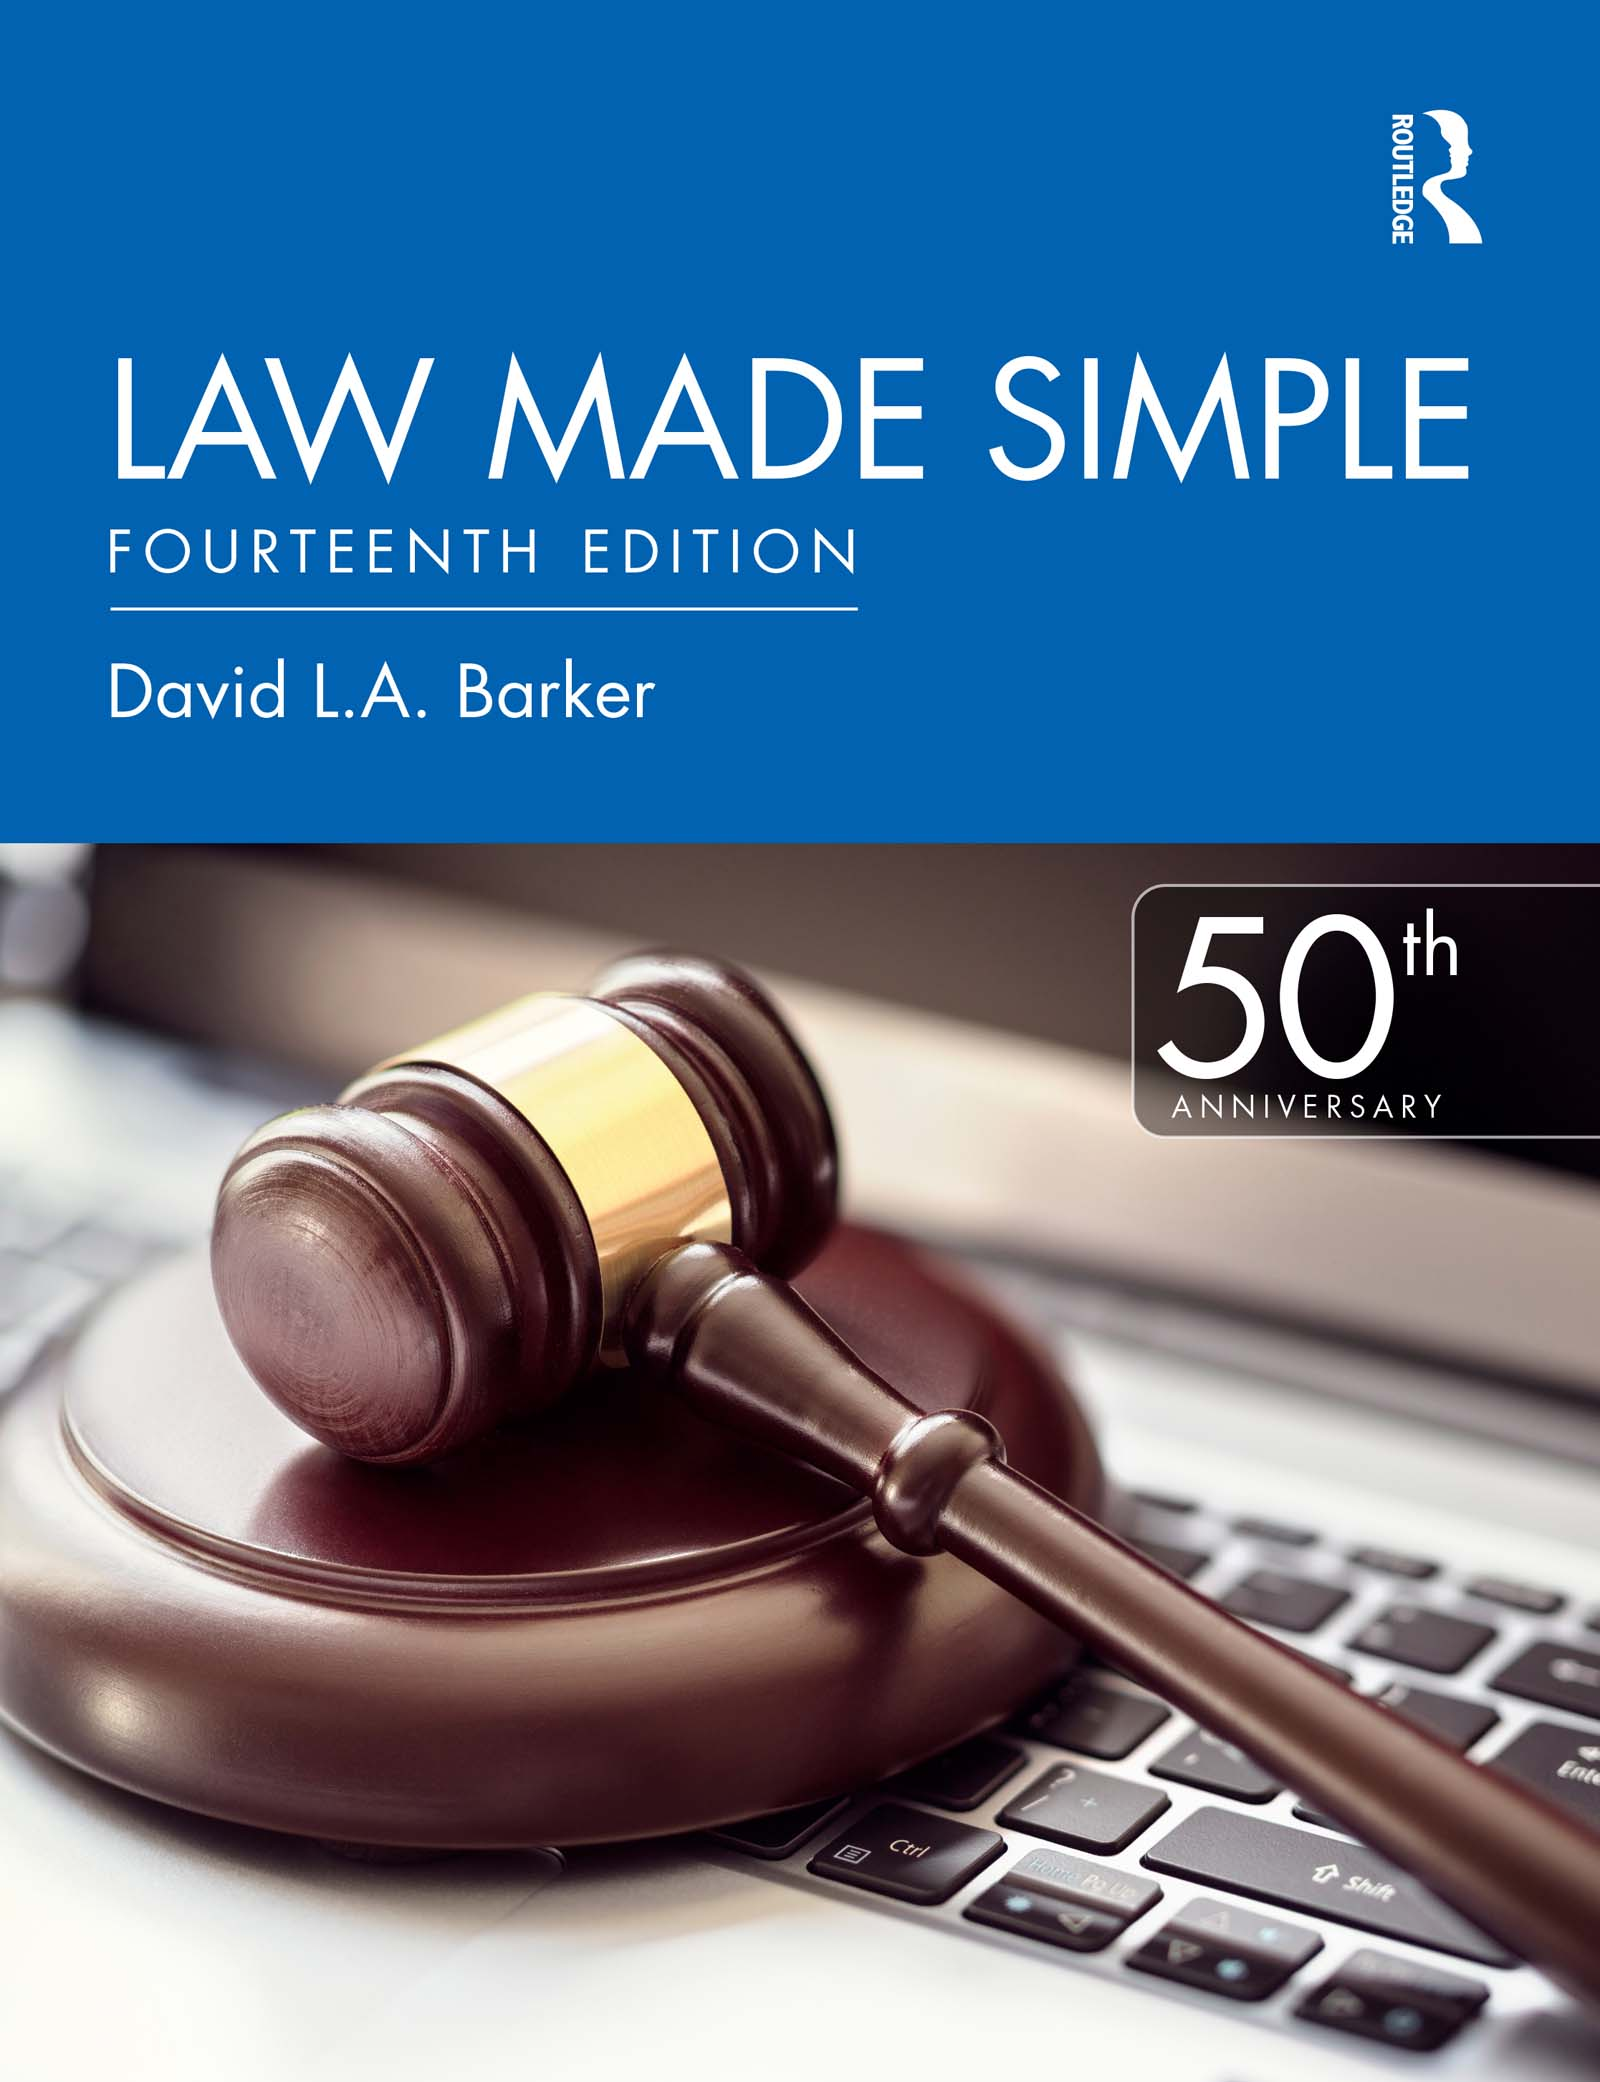 Law Made Simple book cover